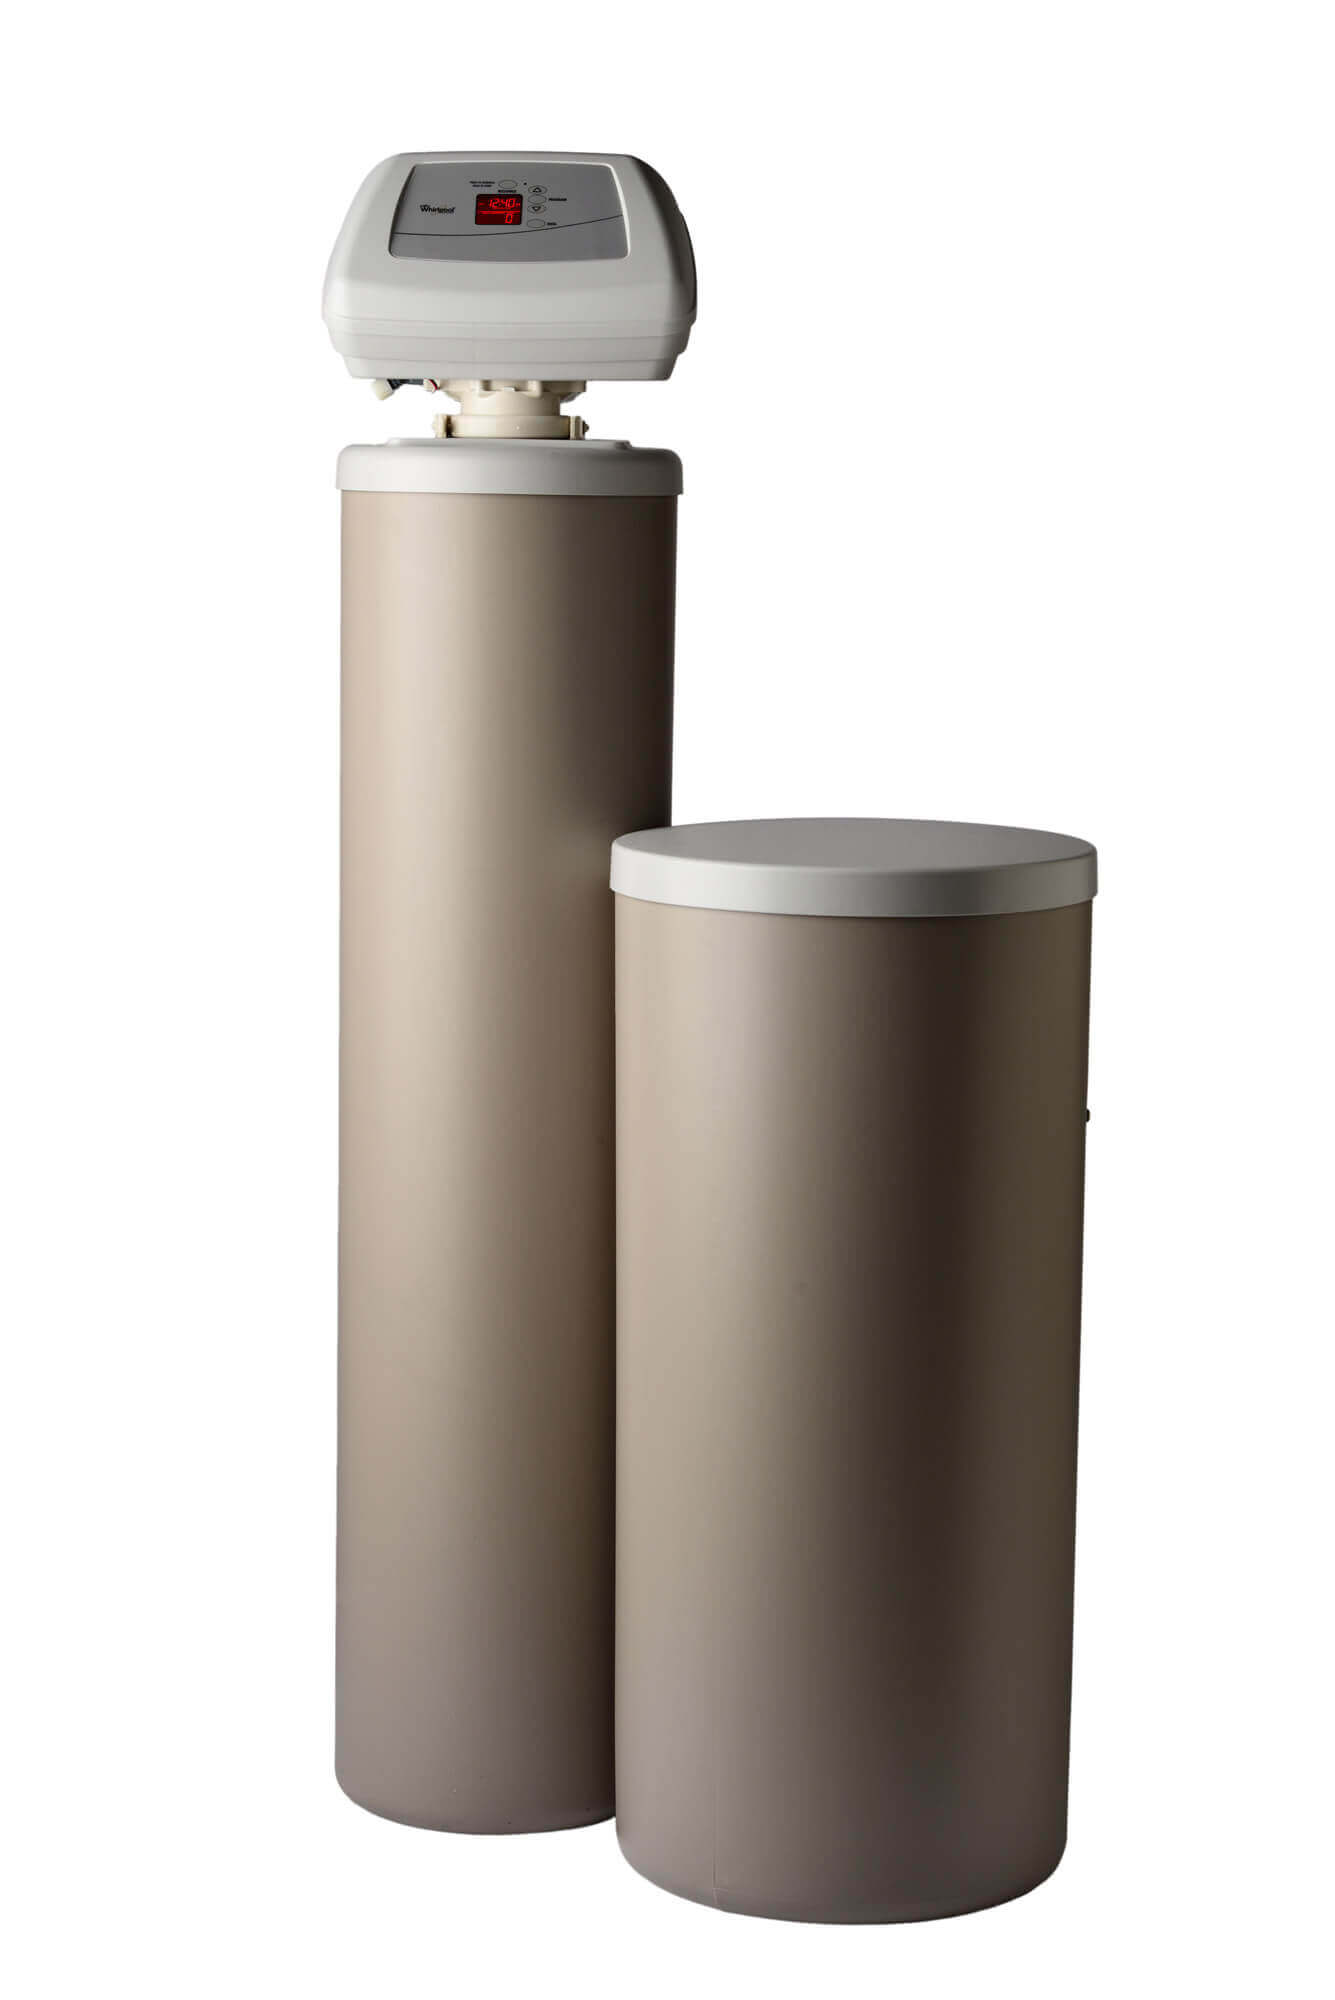 How To Hook Up A Water Softener 60000 Grain Capacity Water Softener Whes60 Whirlpool